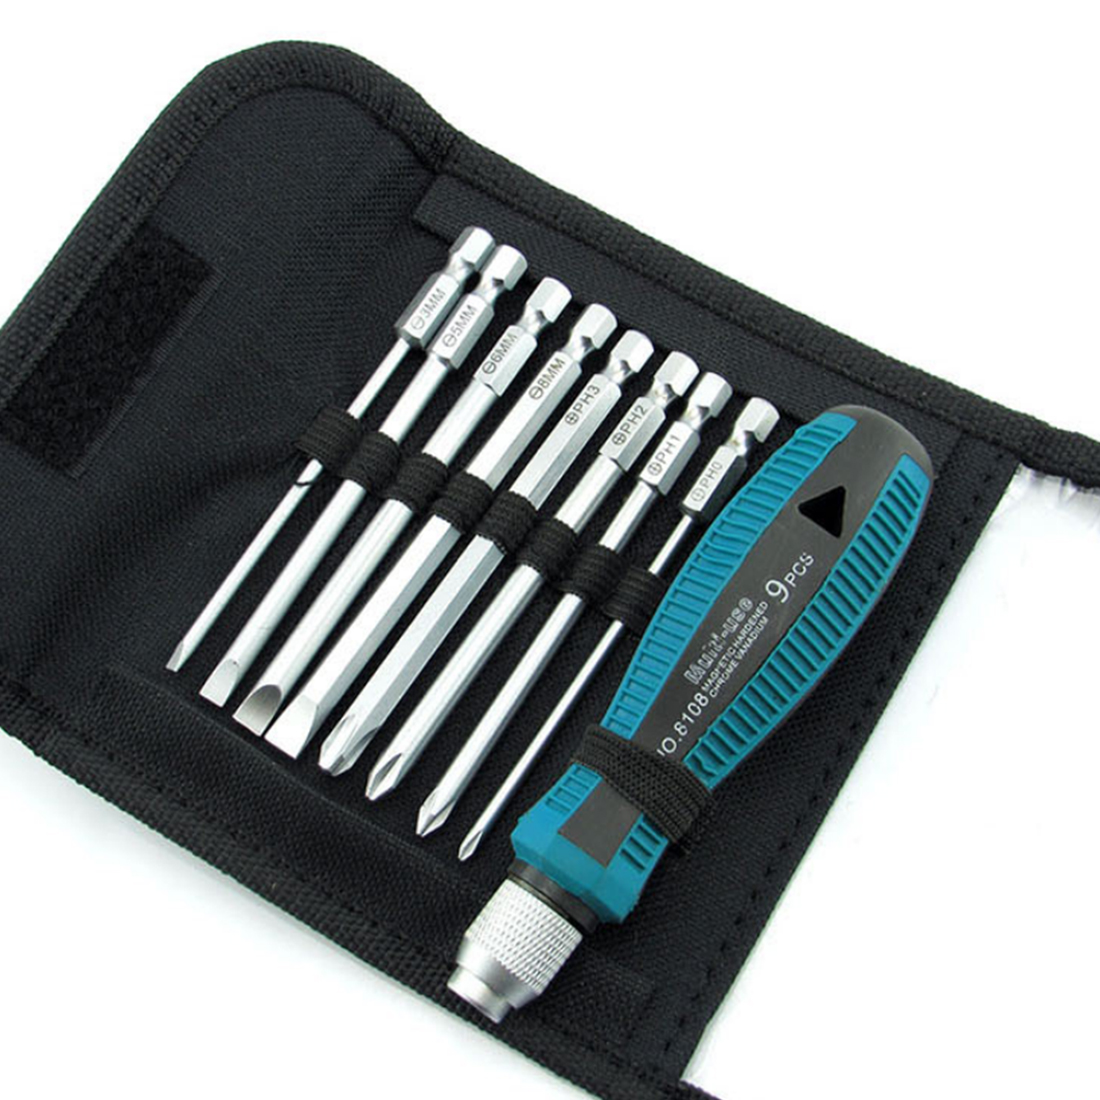 9pcs/set Precision Screwdriver Set 9 IN 1 Screwdrivers Kit Bag 8 Insert Bits+1pcs Rubber Handle Top Quality